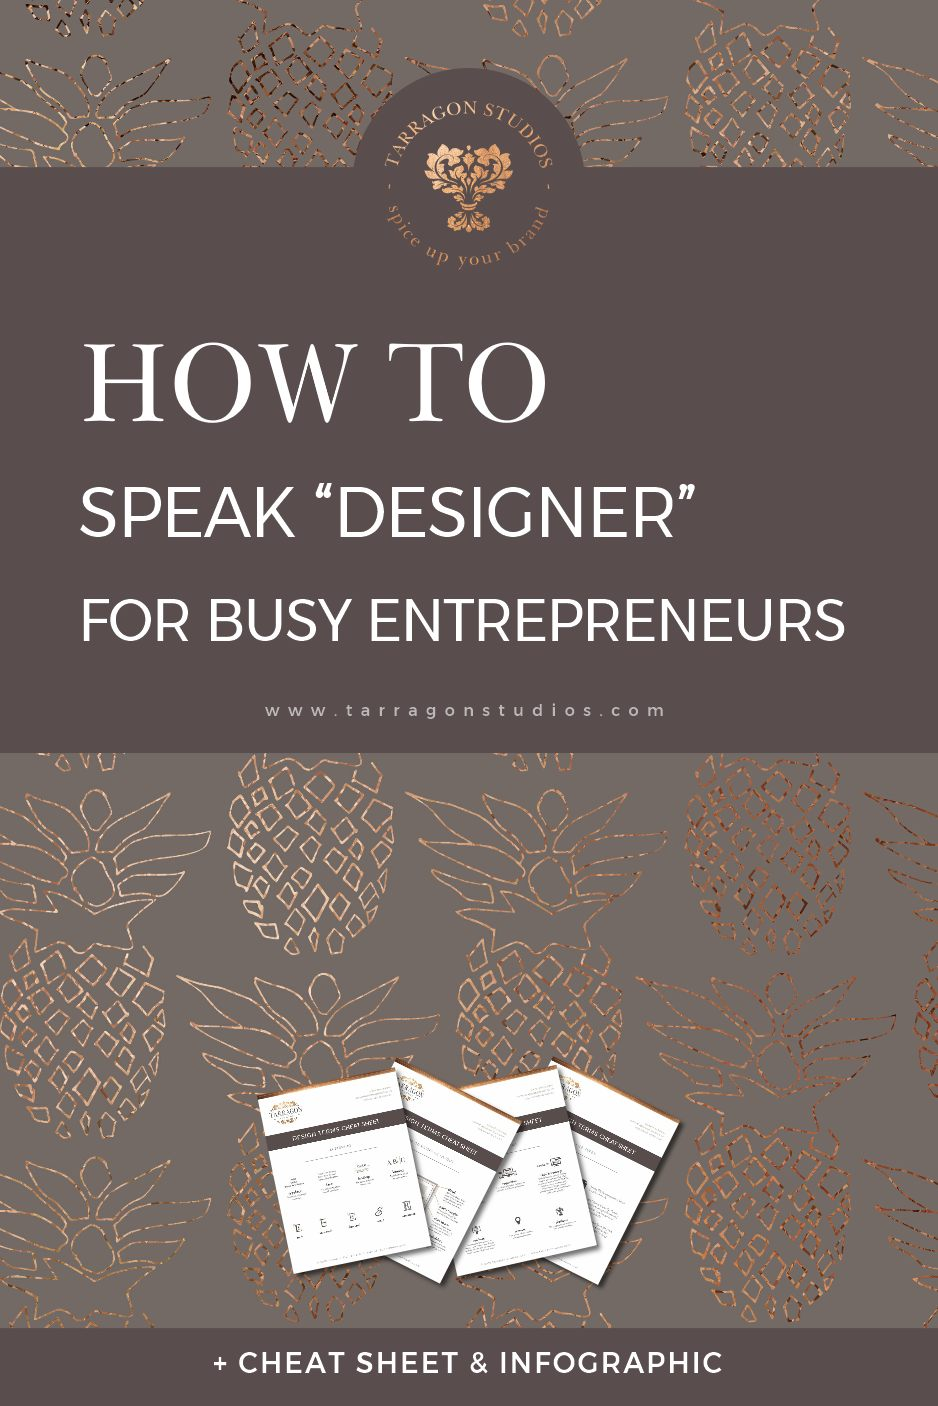 Clear communication with your designer is the key to crafting a design you'll love but it's difficult when you don't speak the same language. Keep reading to discover a few key terms that will make communicating with your designer SO much easier! #logo #design #branding #smallbusiness #entrepreneur